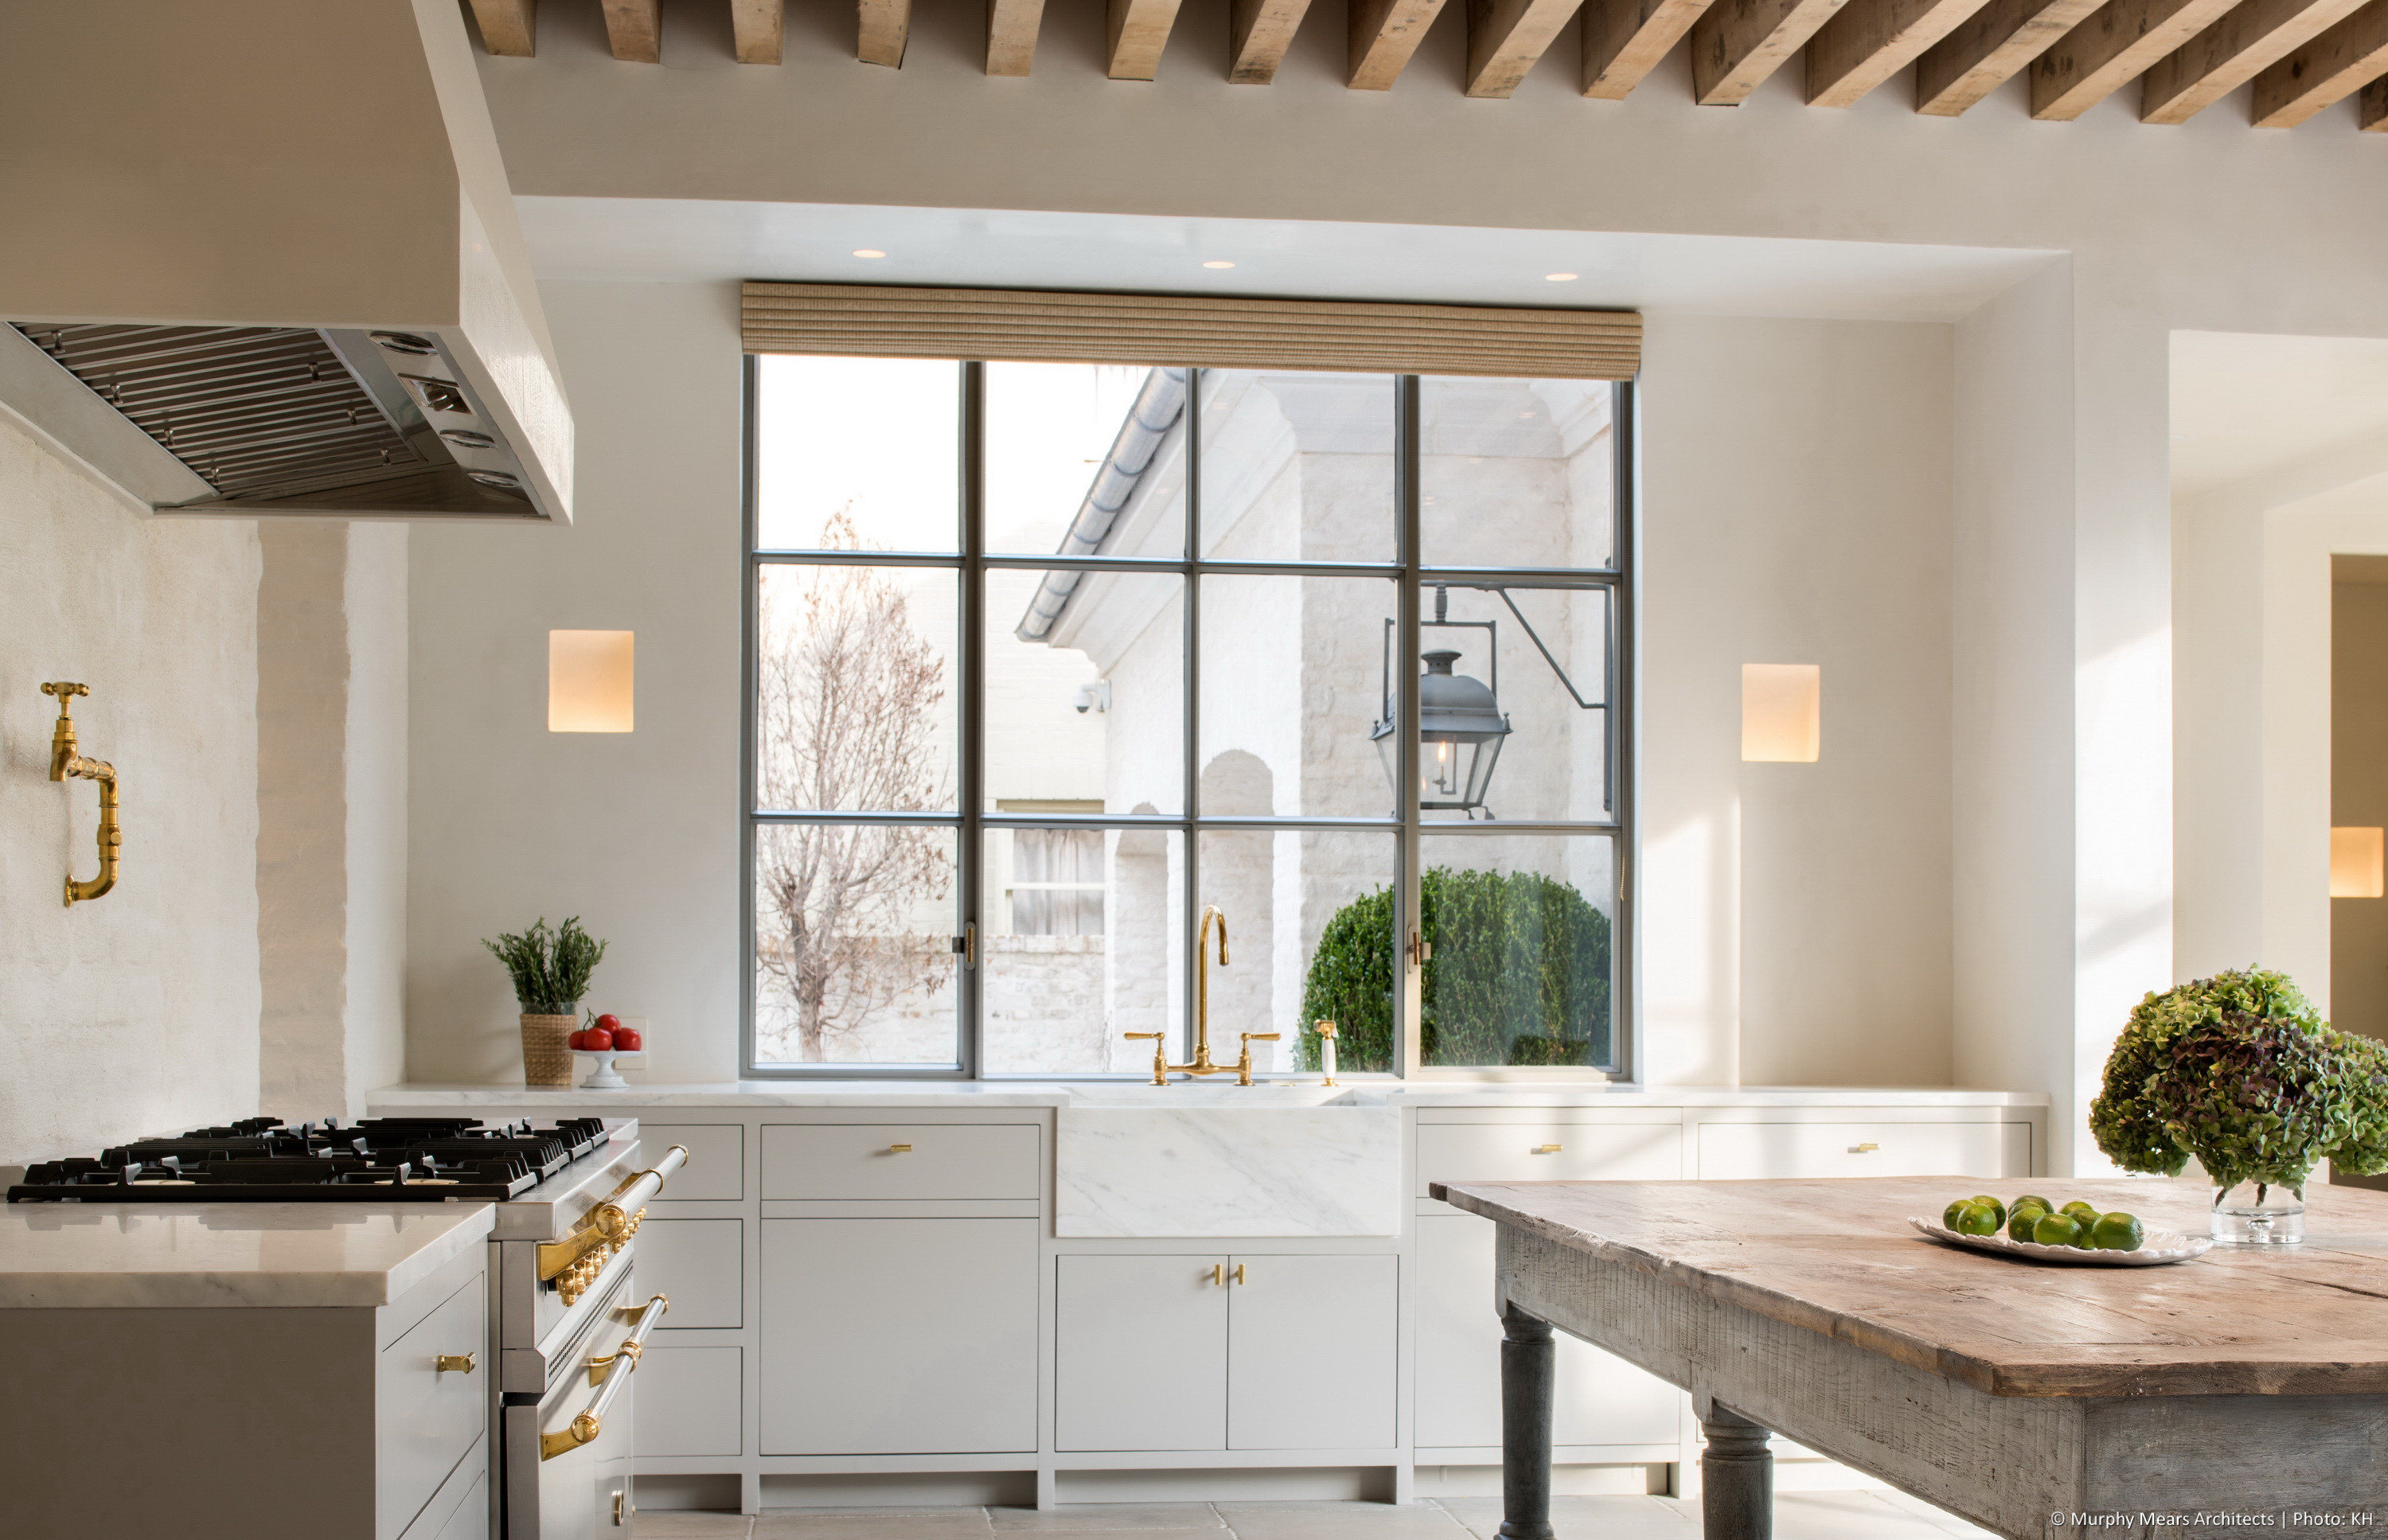 Marble farmhouse sink in front of the steel kitchen window, overlooking the side autocourt.